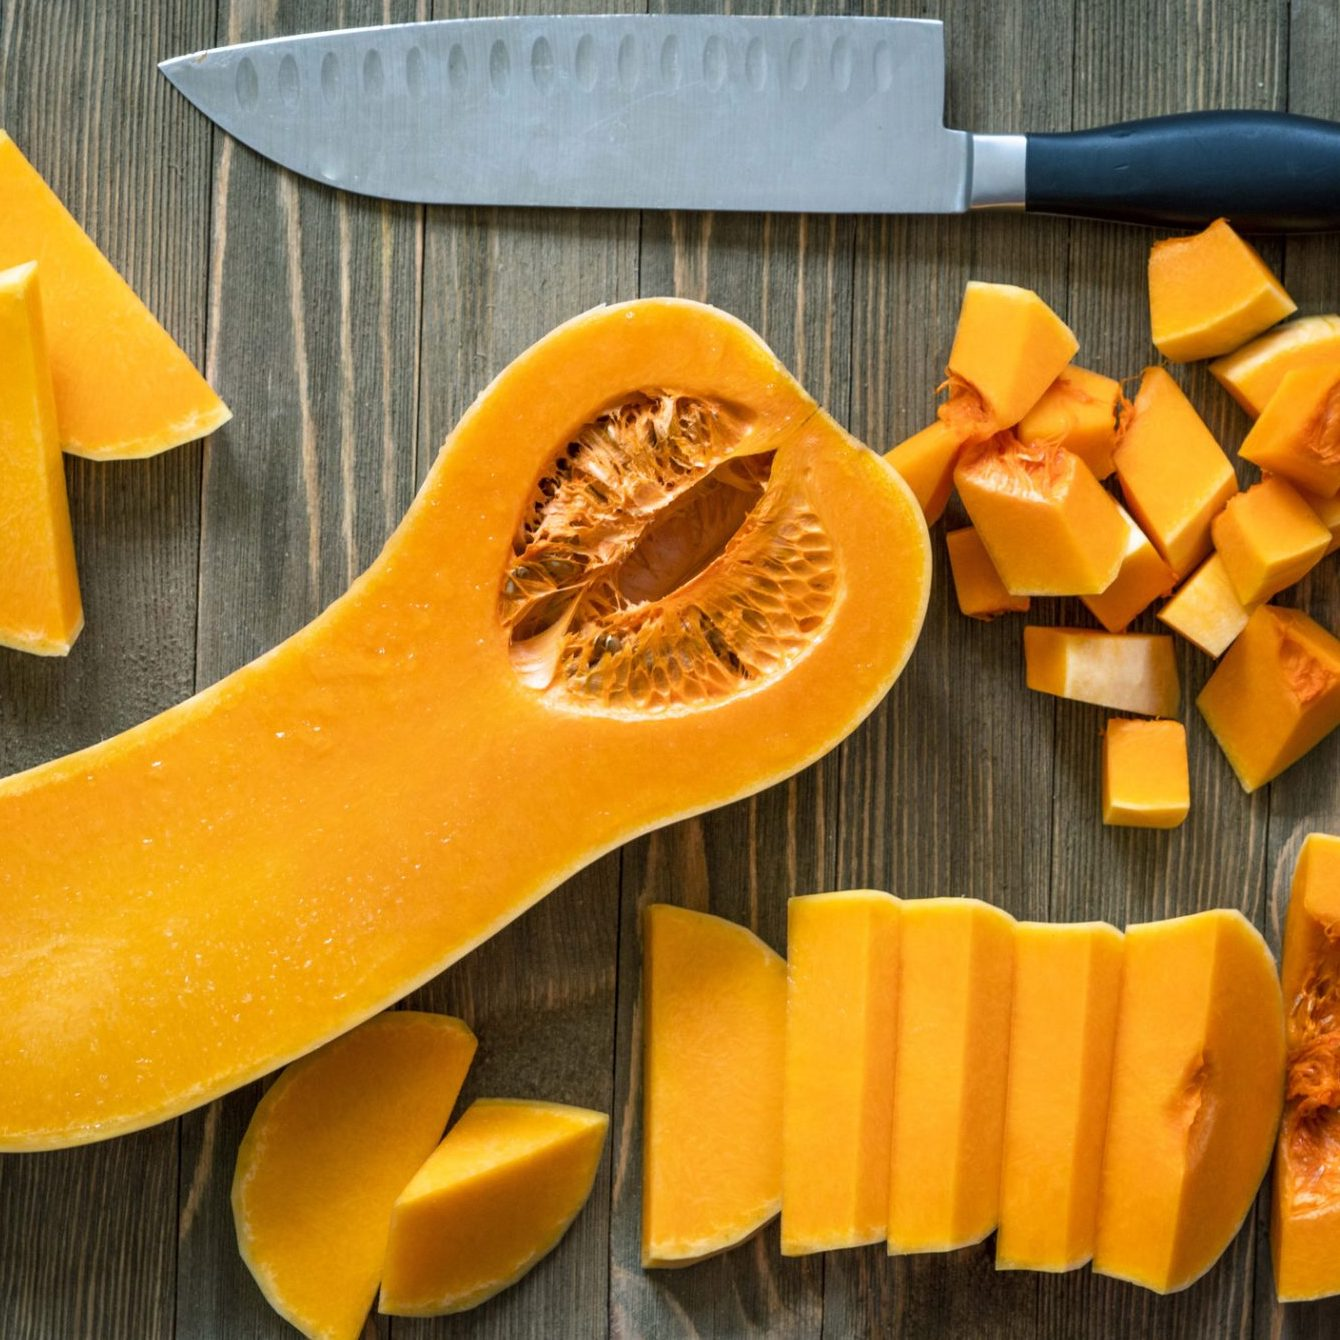 butternut squash sliced and cubed